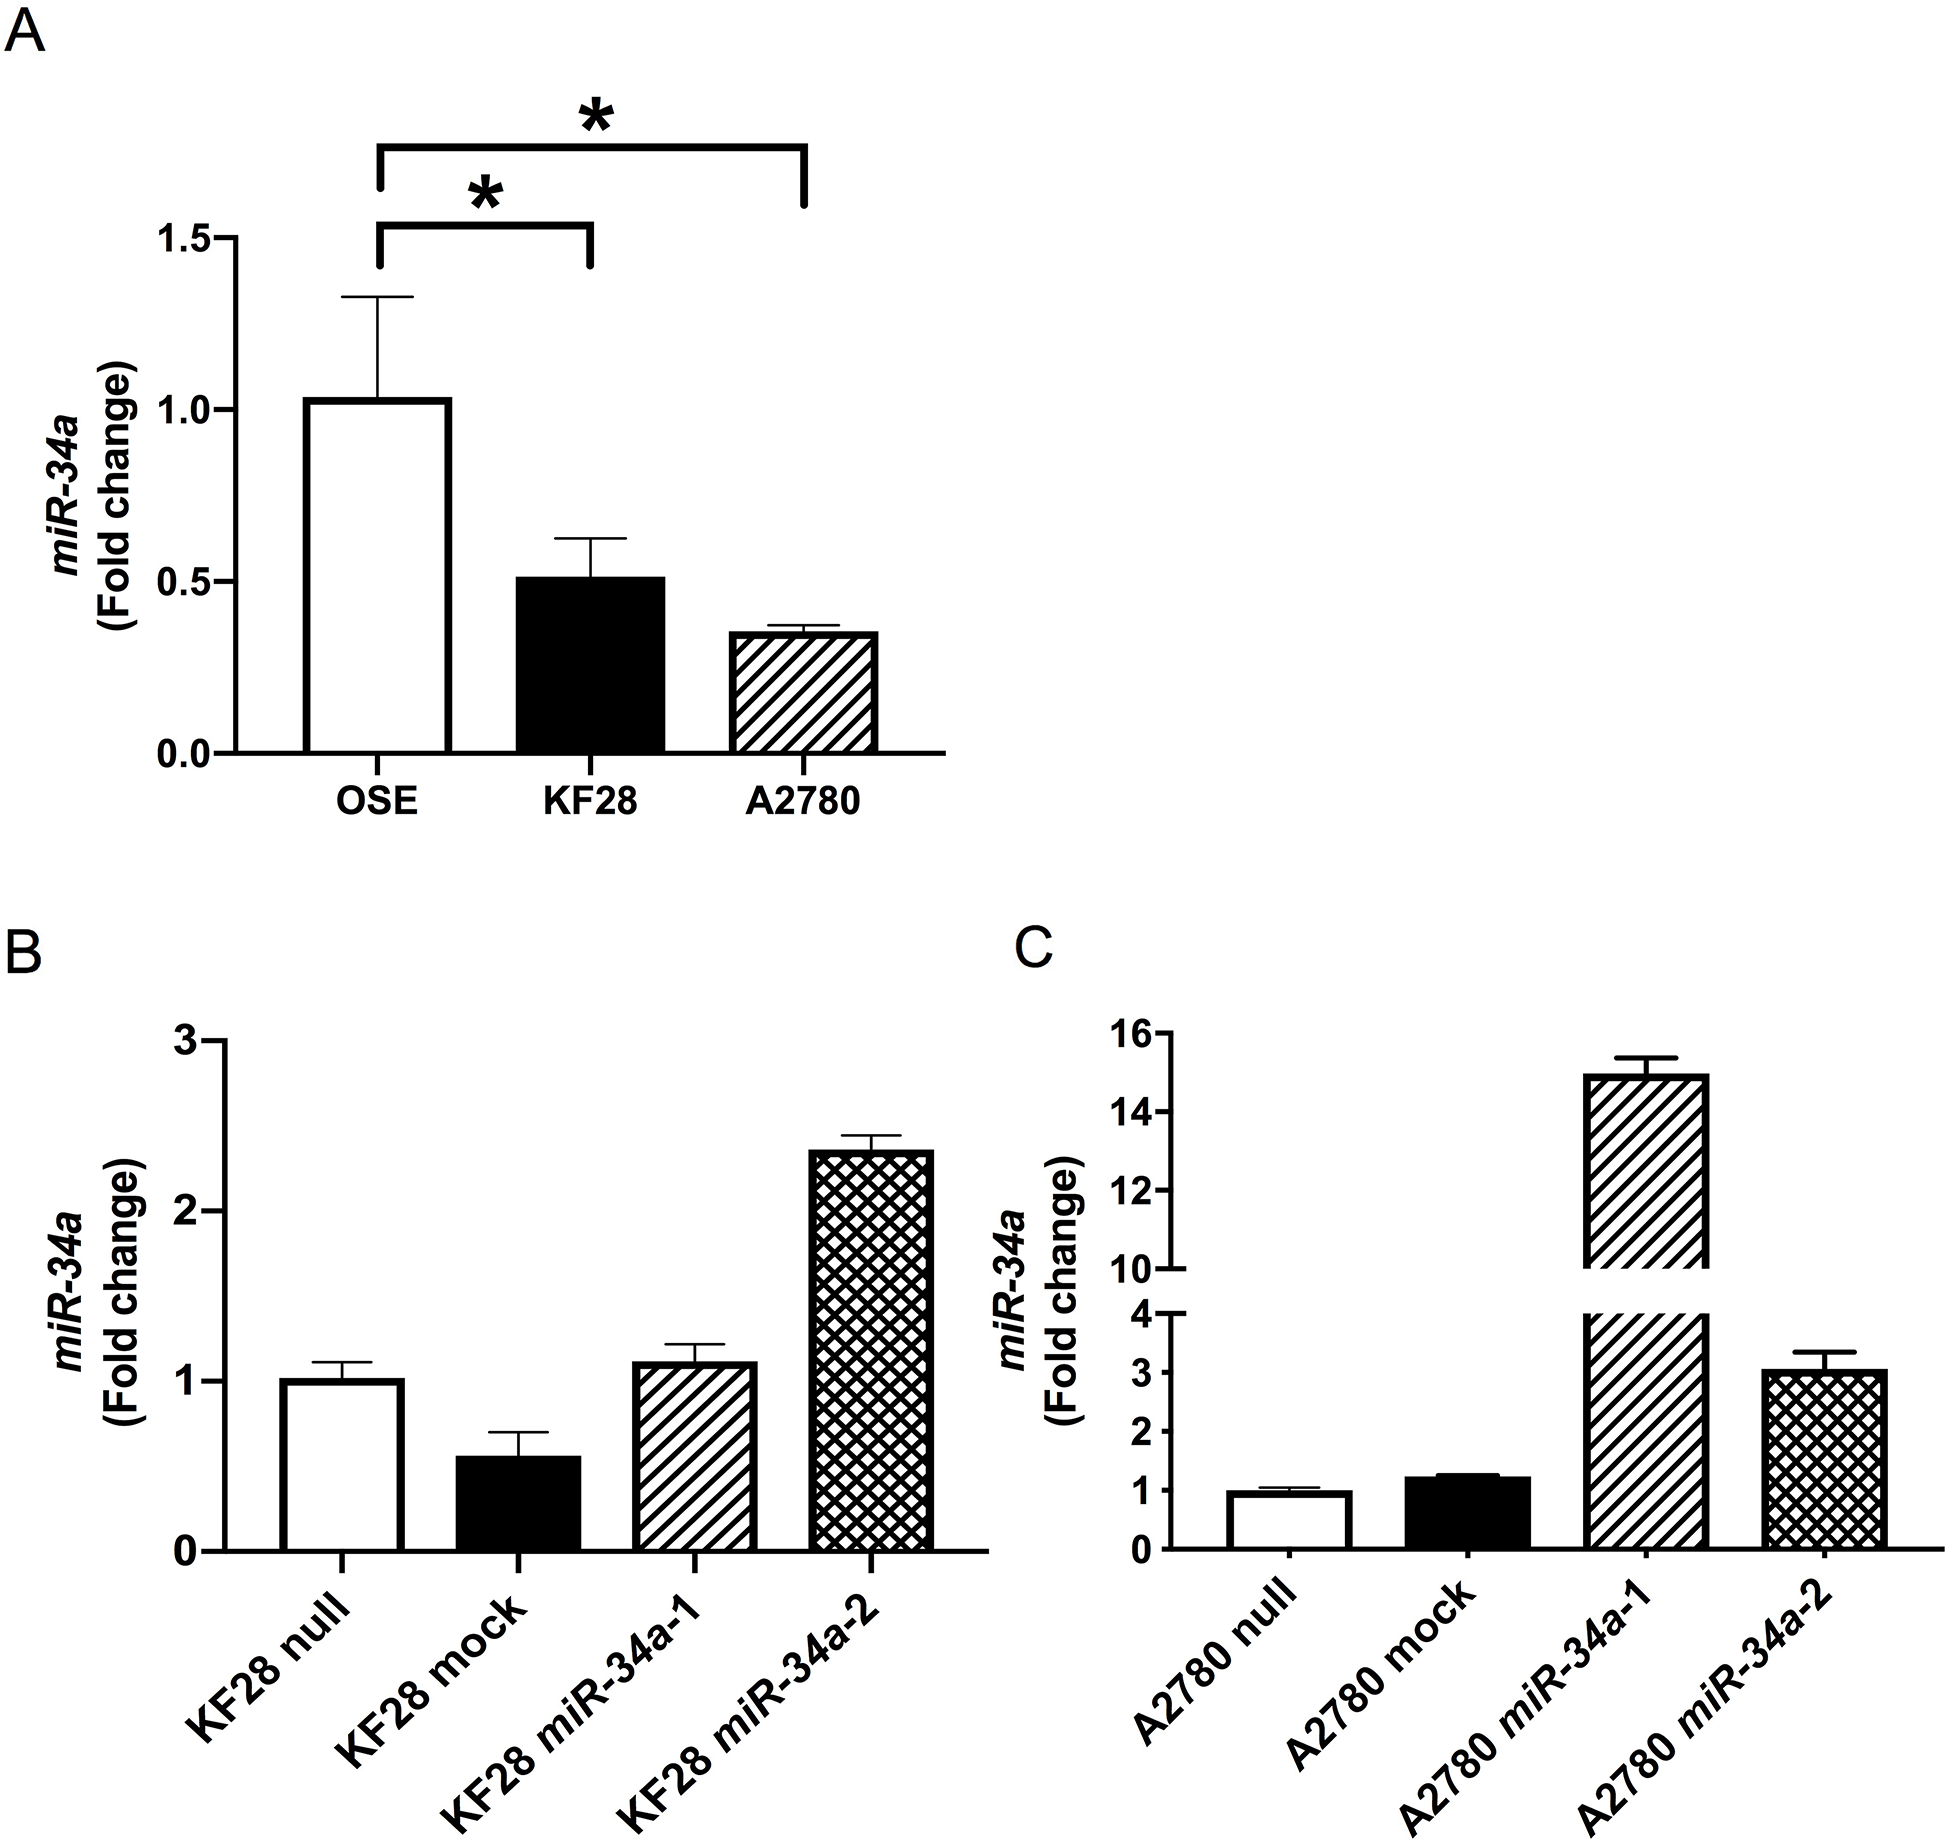 Establishment of HGSC cell lines with stable miR-34a overexpression miR-34a expression was quantified using the comparative method in real-time RT-PCR analysis.